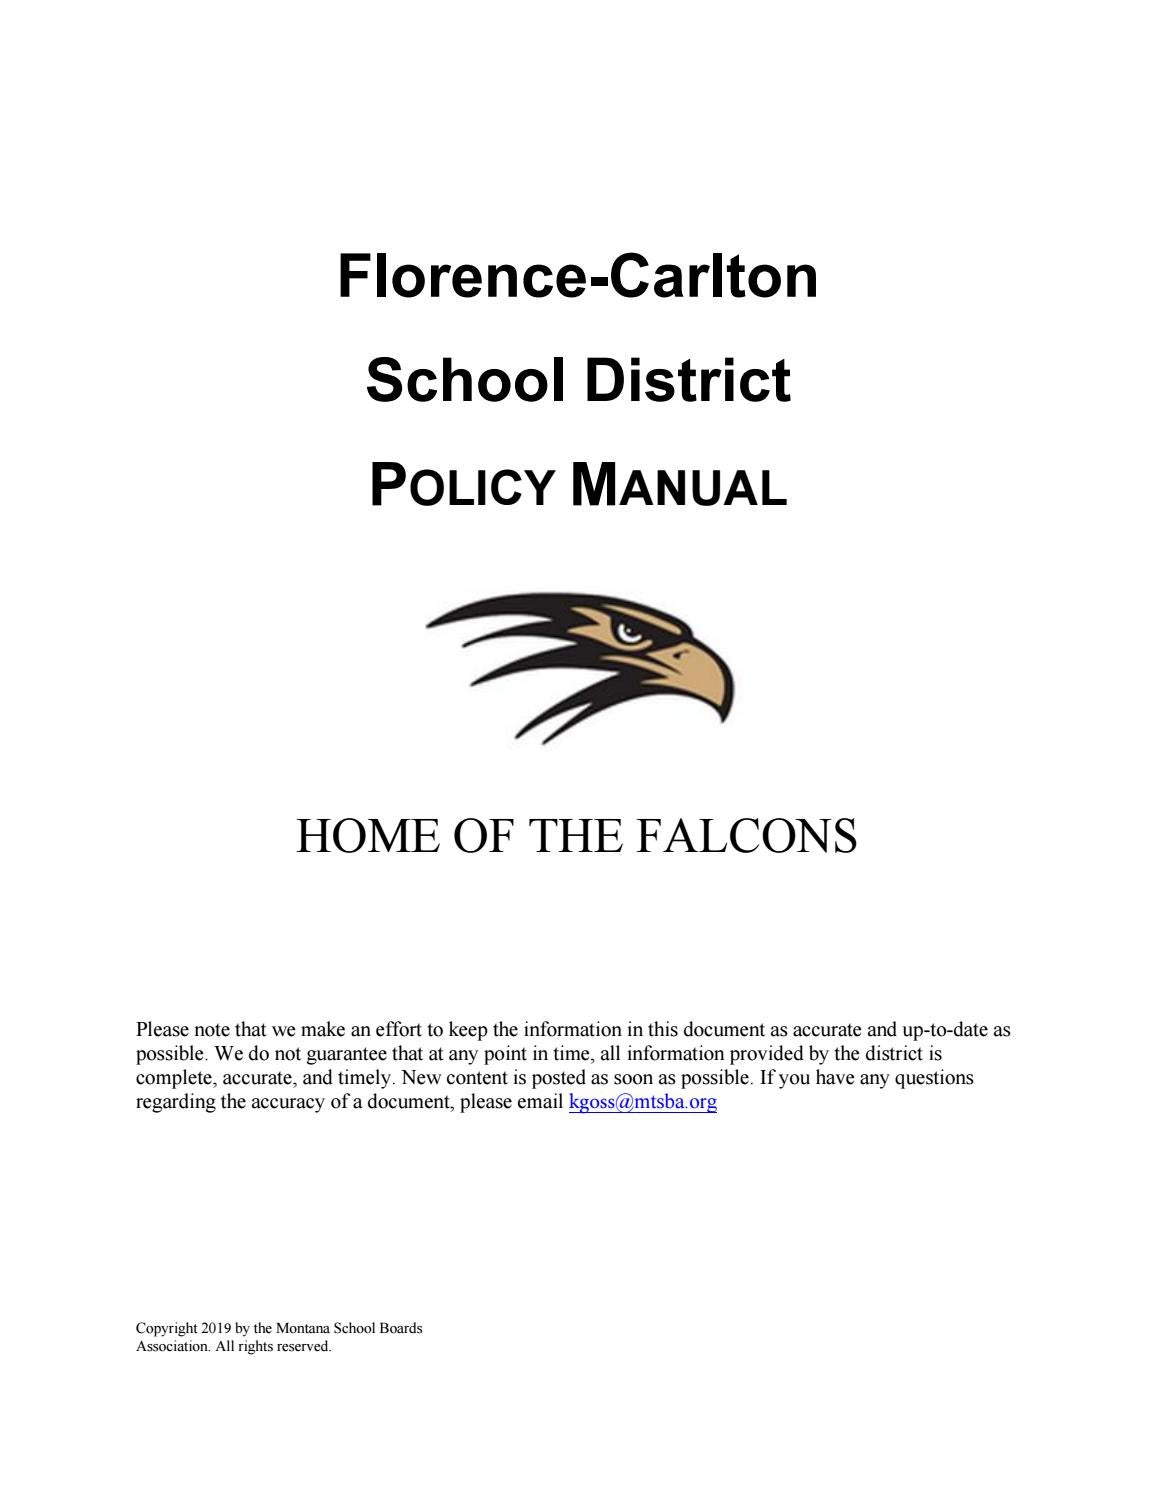 Florence Carlton Public Schools Policy Manual by Montana